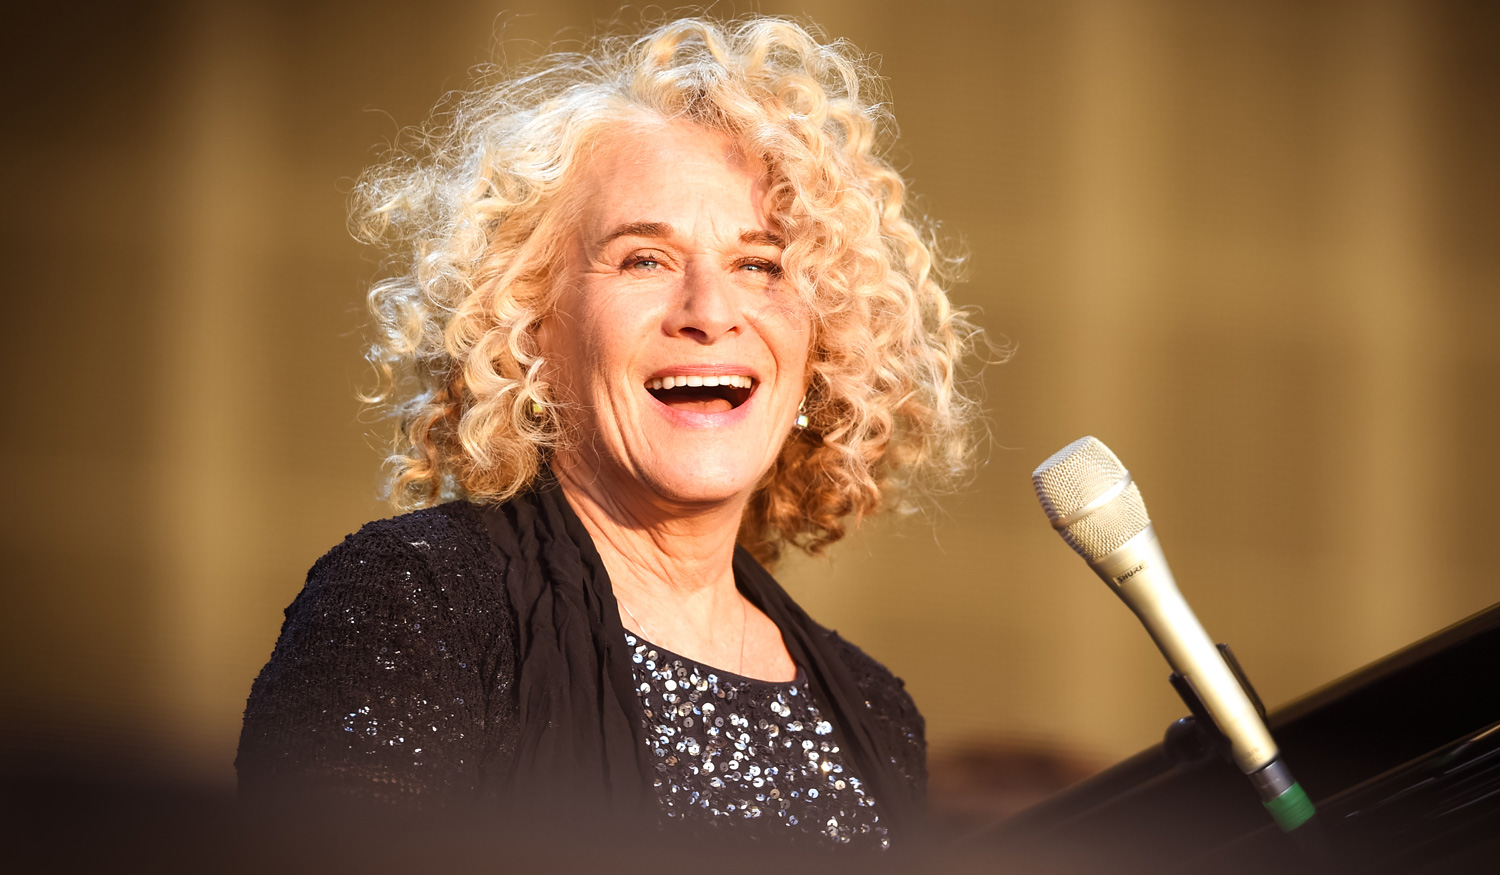 Official Website of Carole King - Songwriter, Performer Carole king photo gallery